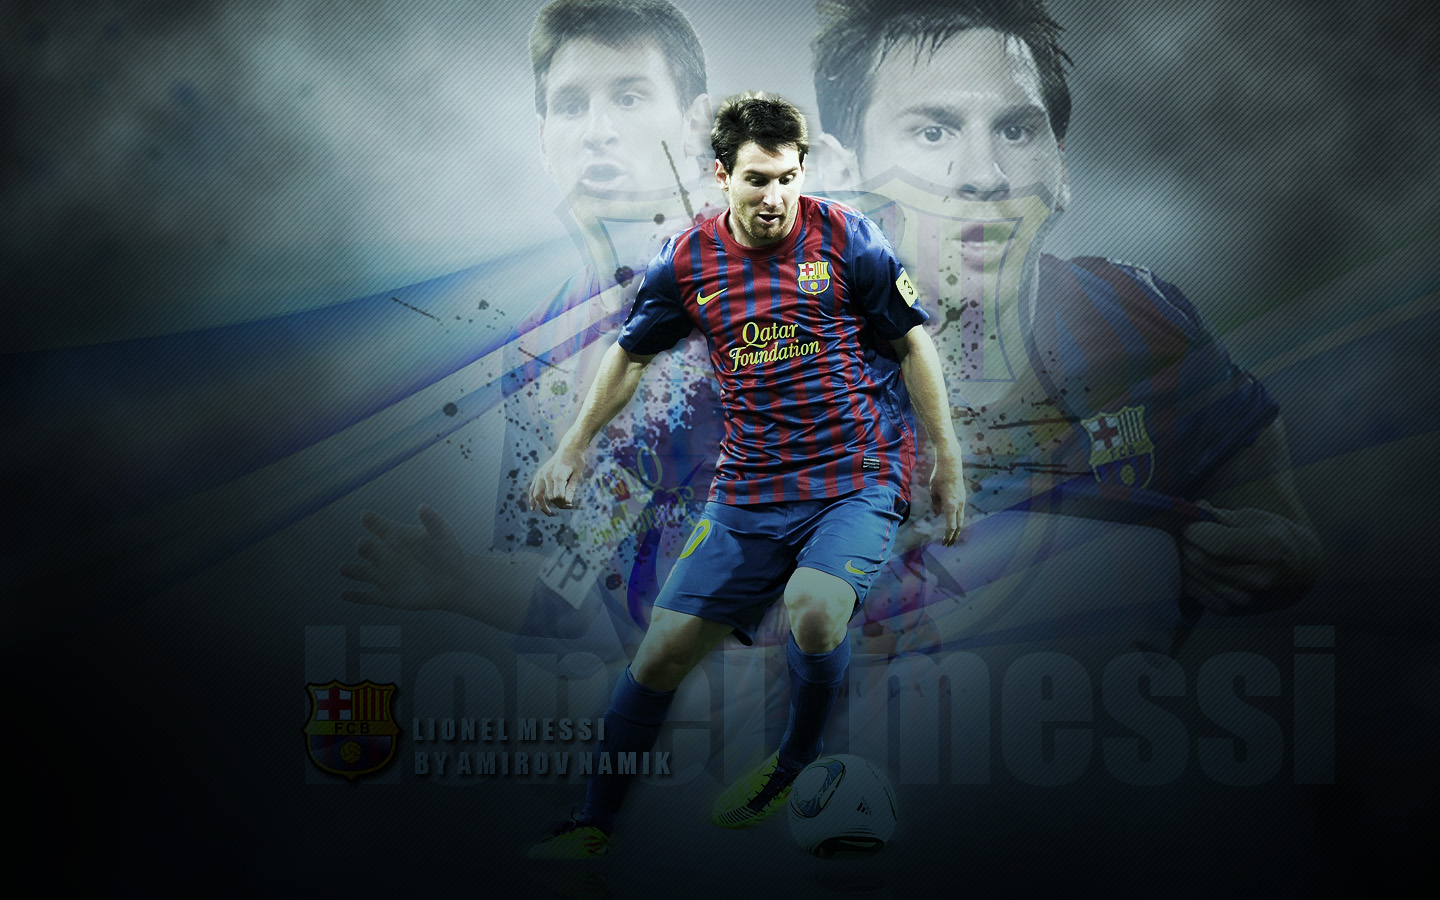 http://1.bp.blogspot.com/-FIGmNteBCVg/UIWTS6Re3dI/AAAAAAAAAaE/GbjnNgGrx6M/s1600/Lionel+Messi+New+HD+Wallpaper+2012+01.jpg